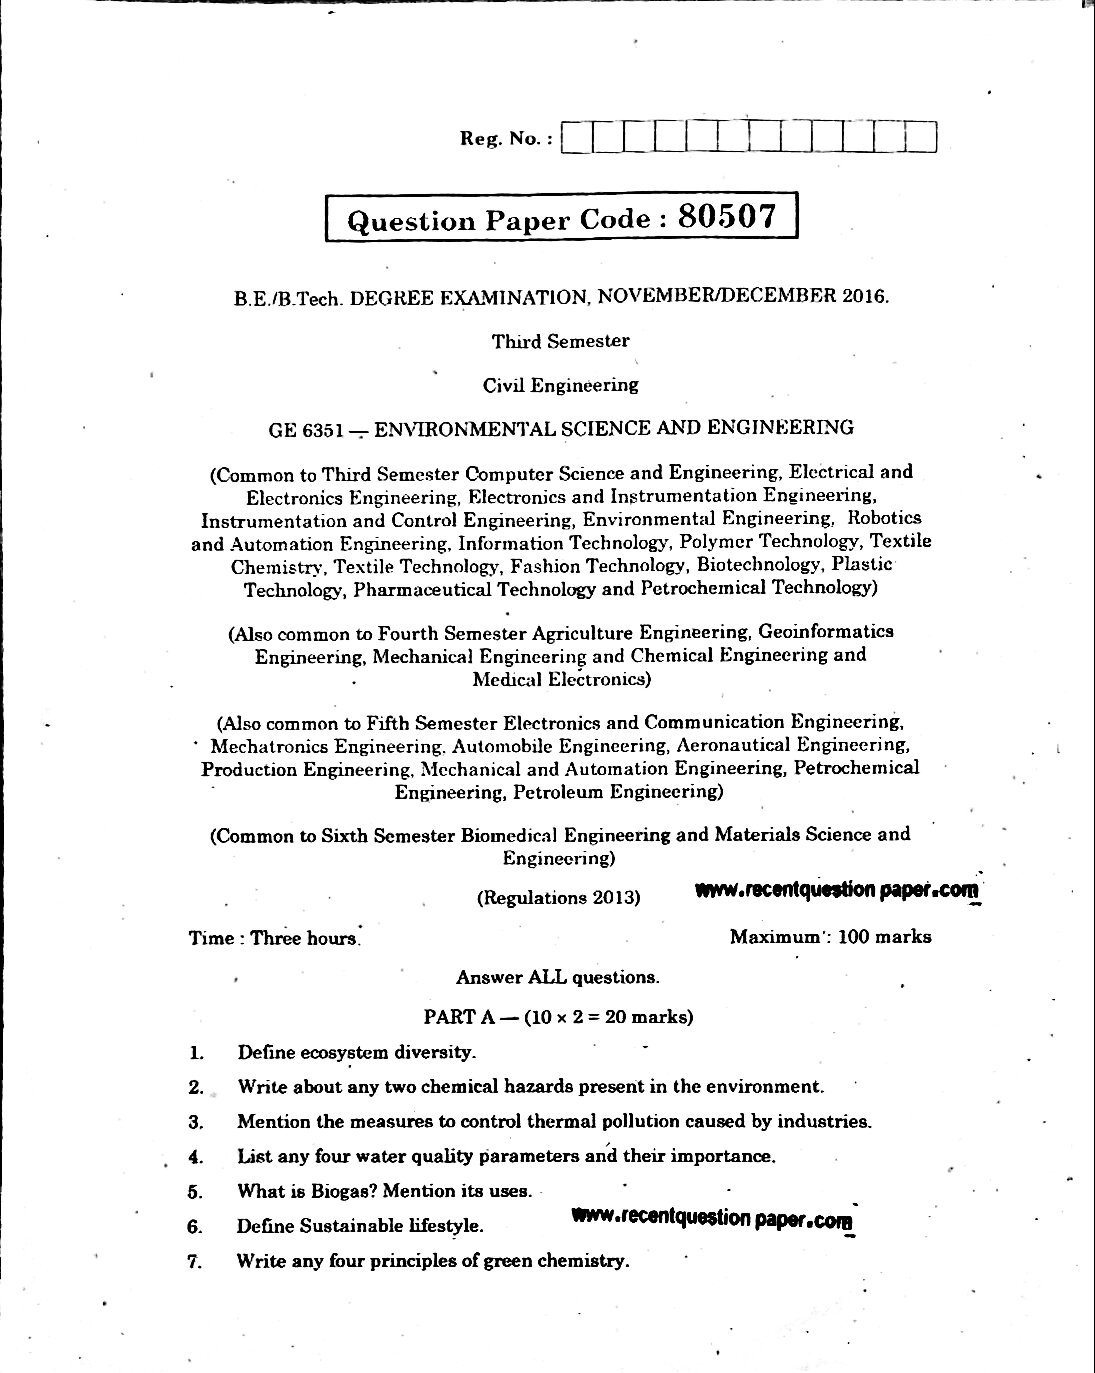 Ge6351 Environmental Science And Engineering 0 Recent Question Paper